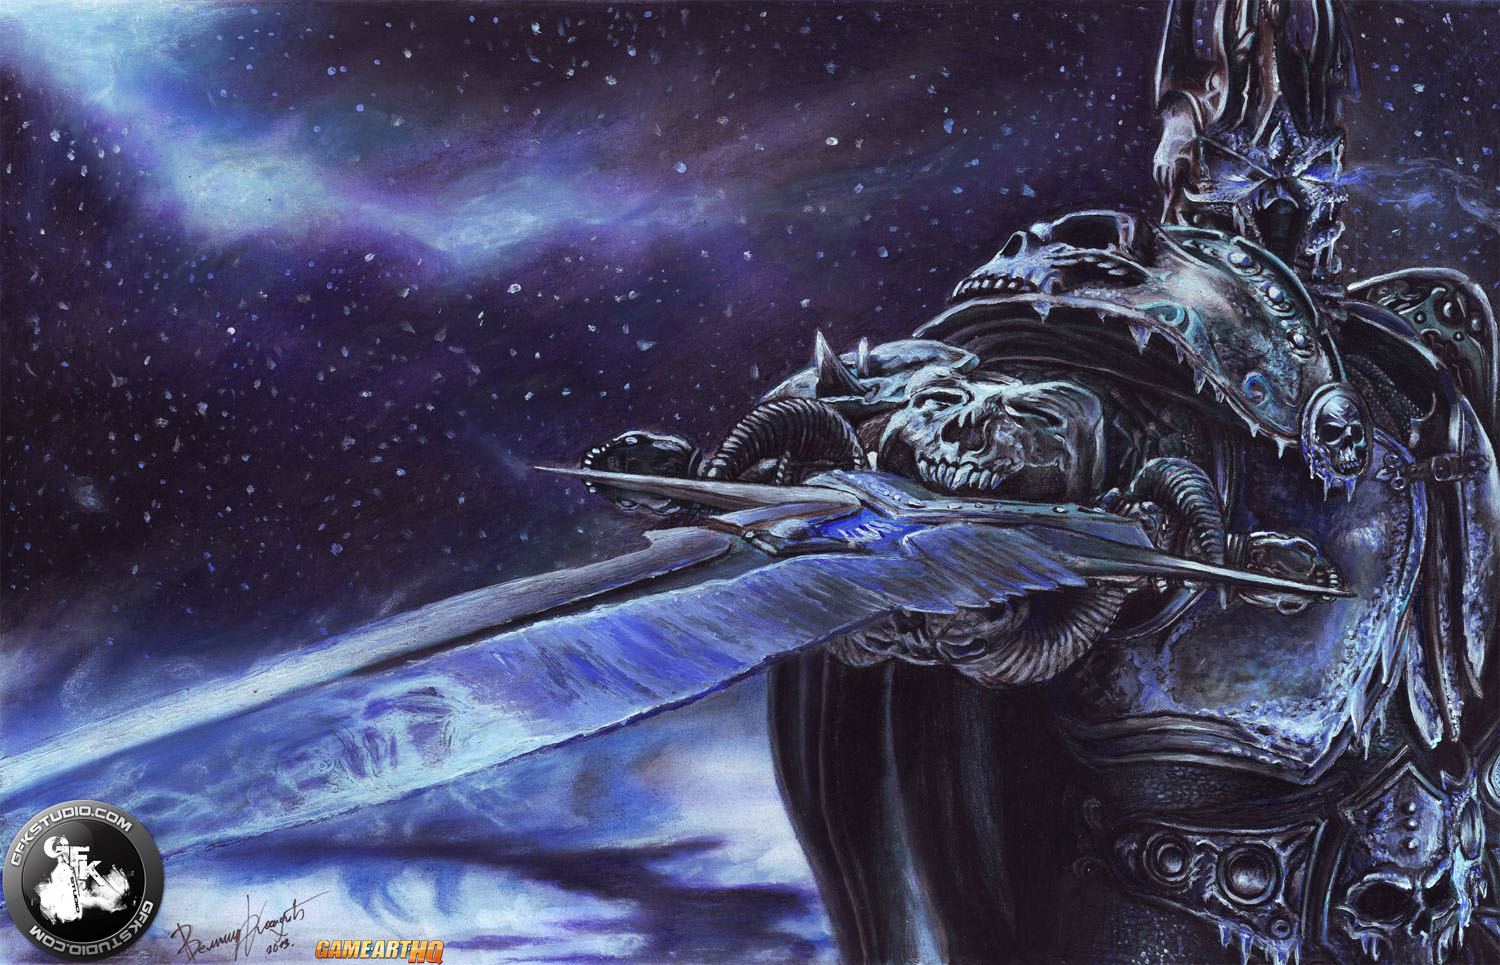 Arthas Menethil The Lich King From World Of Warcraft